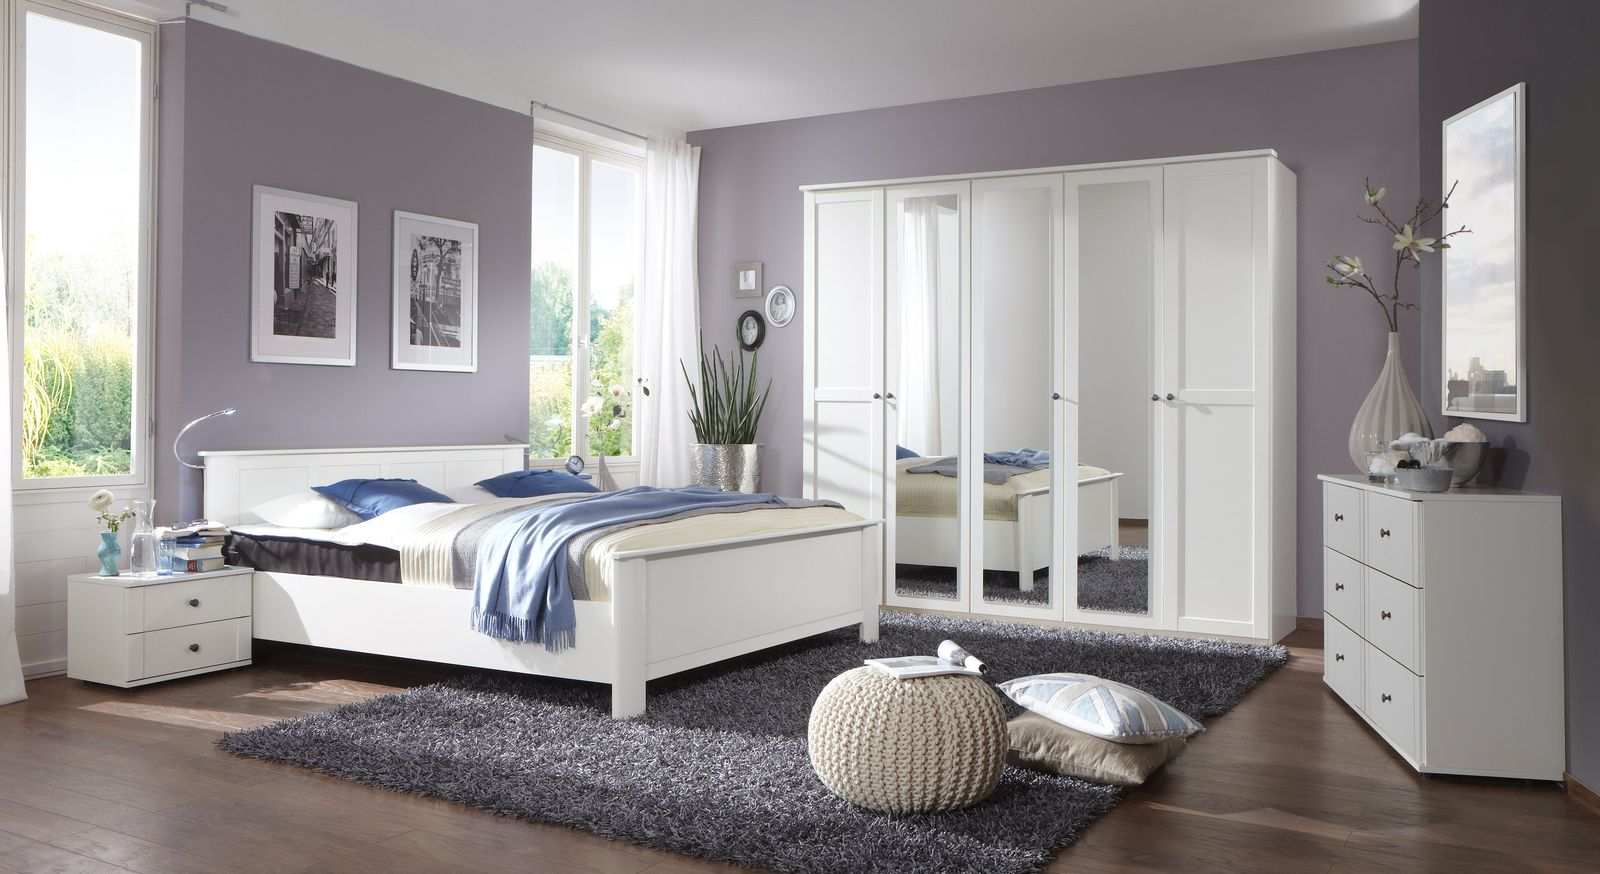 g nstiges schlafzimmer komplett mit bett und schrank berata. Black Bedroom Furniture Sets. Home Design Ideas